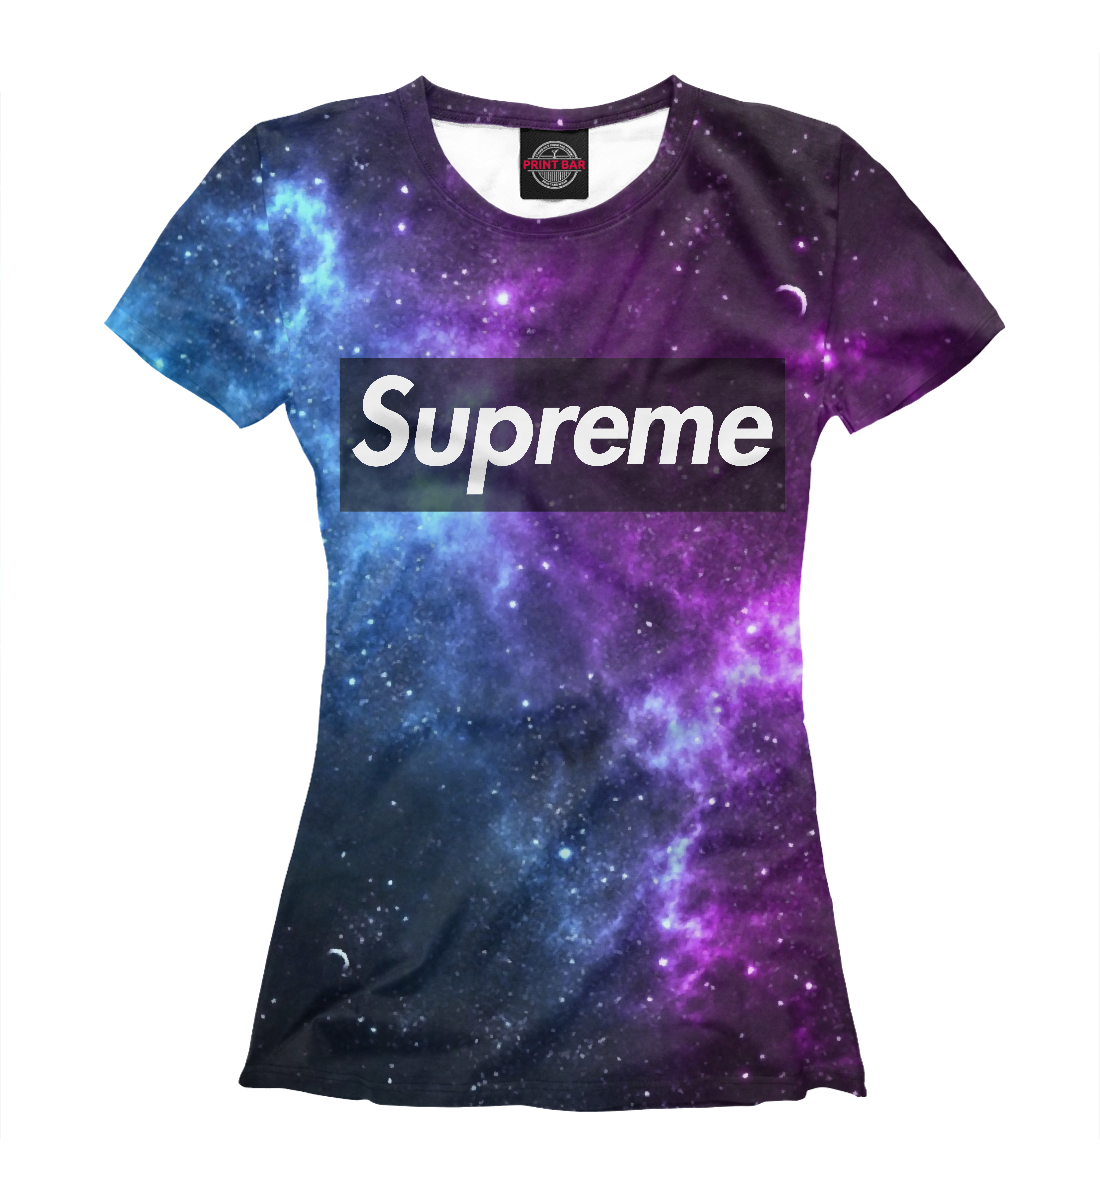 Купить Supreme Space, Printbar, Футболки, SPR-882994-fut-1